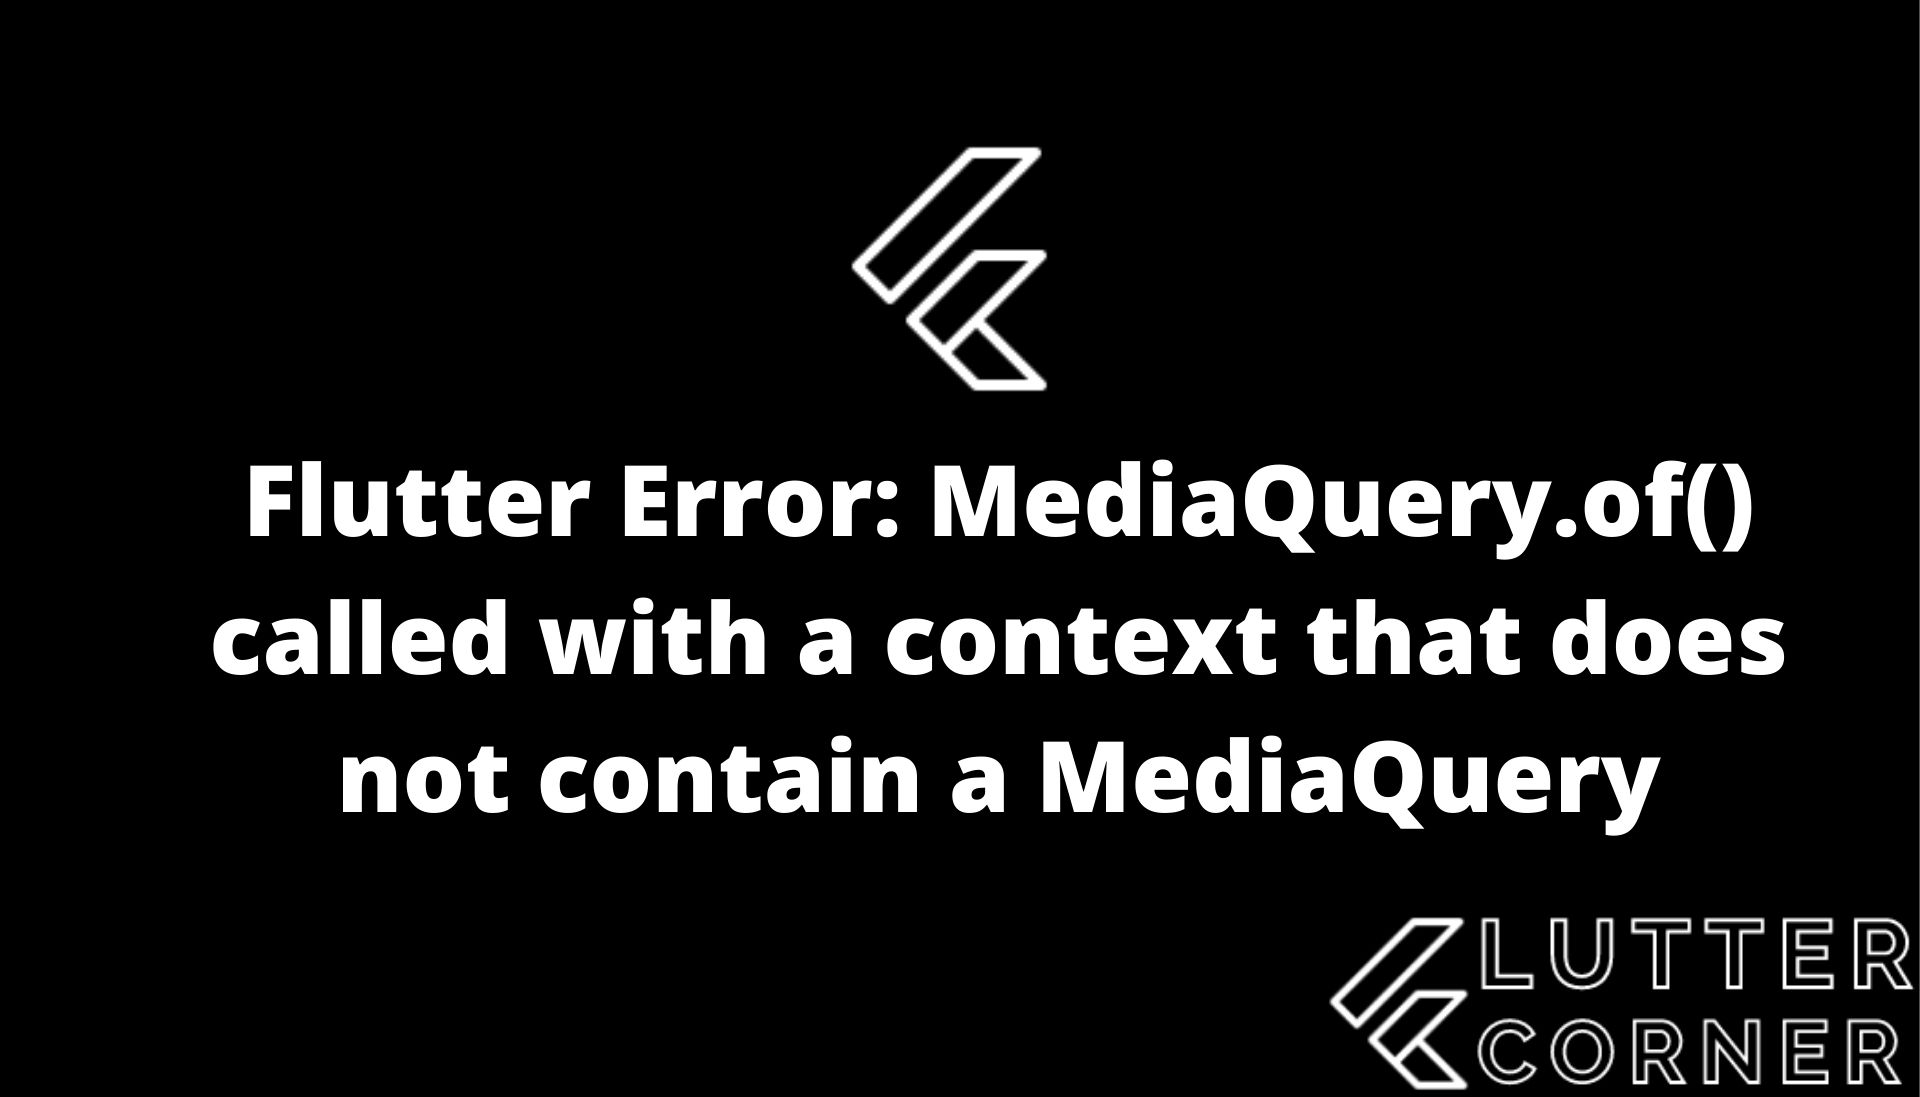 MediaQuery.of() called with a context that does not contain a MediaQuery